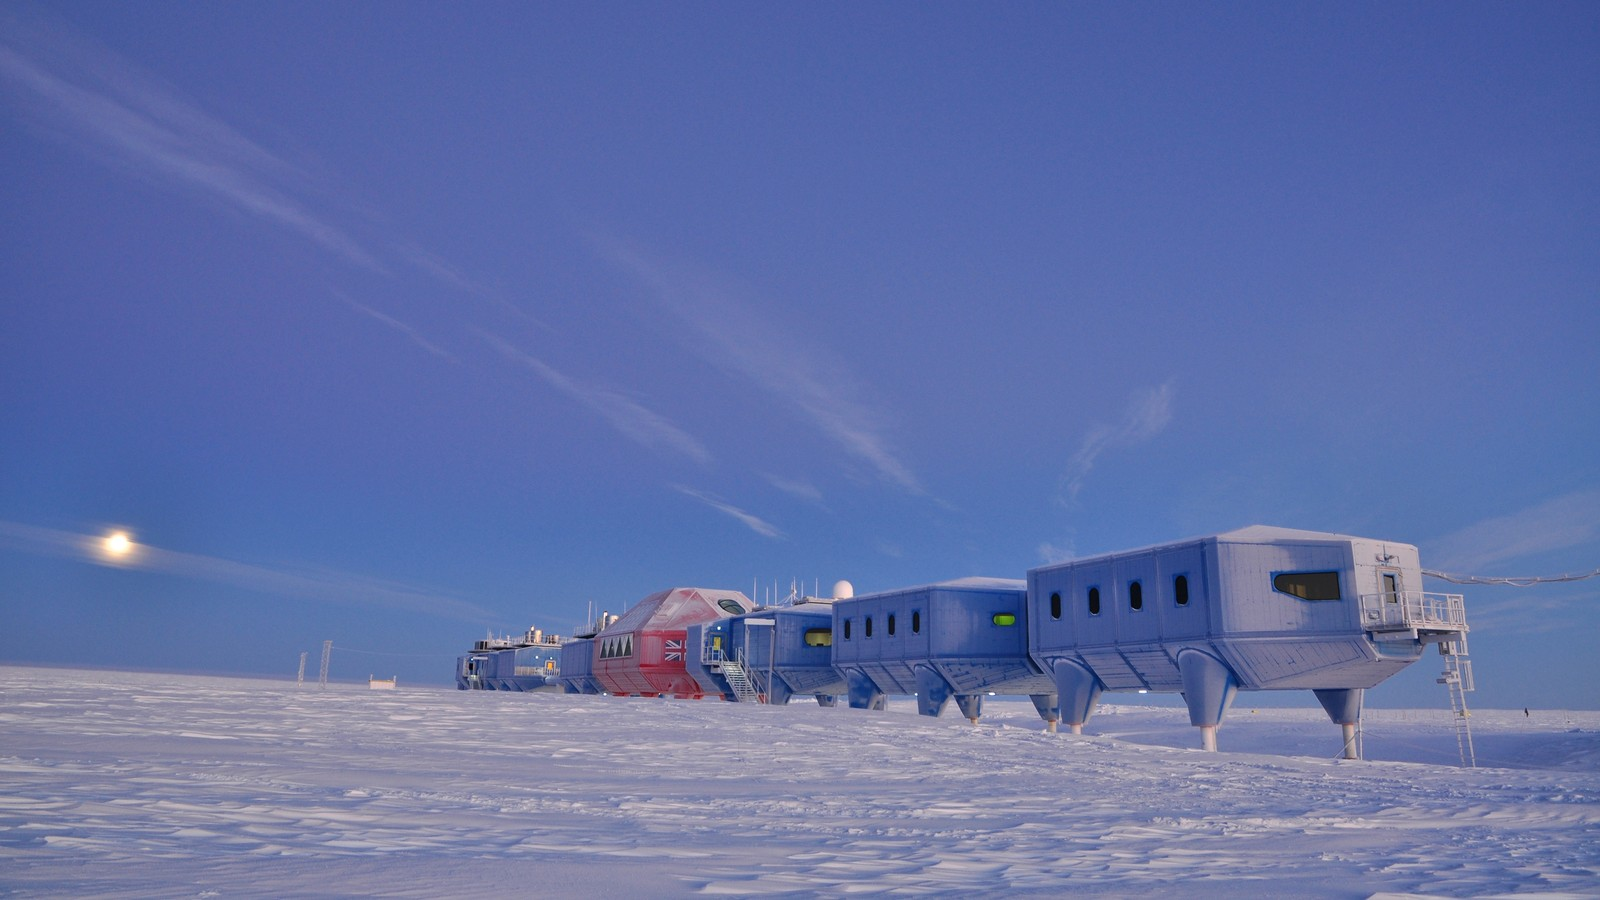 Halley VI British Antarctic Research Station 3